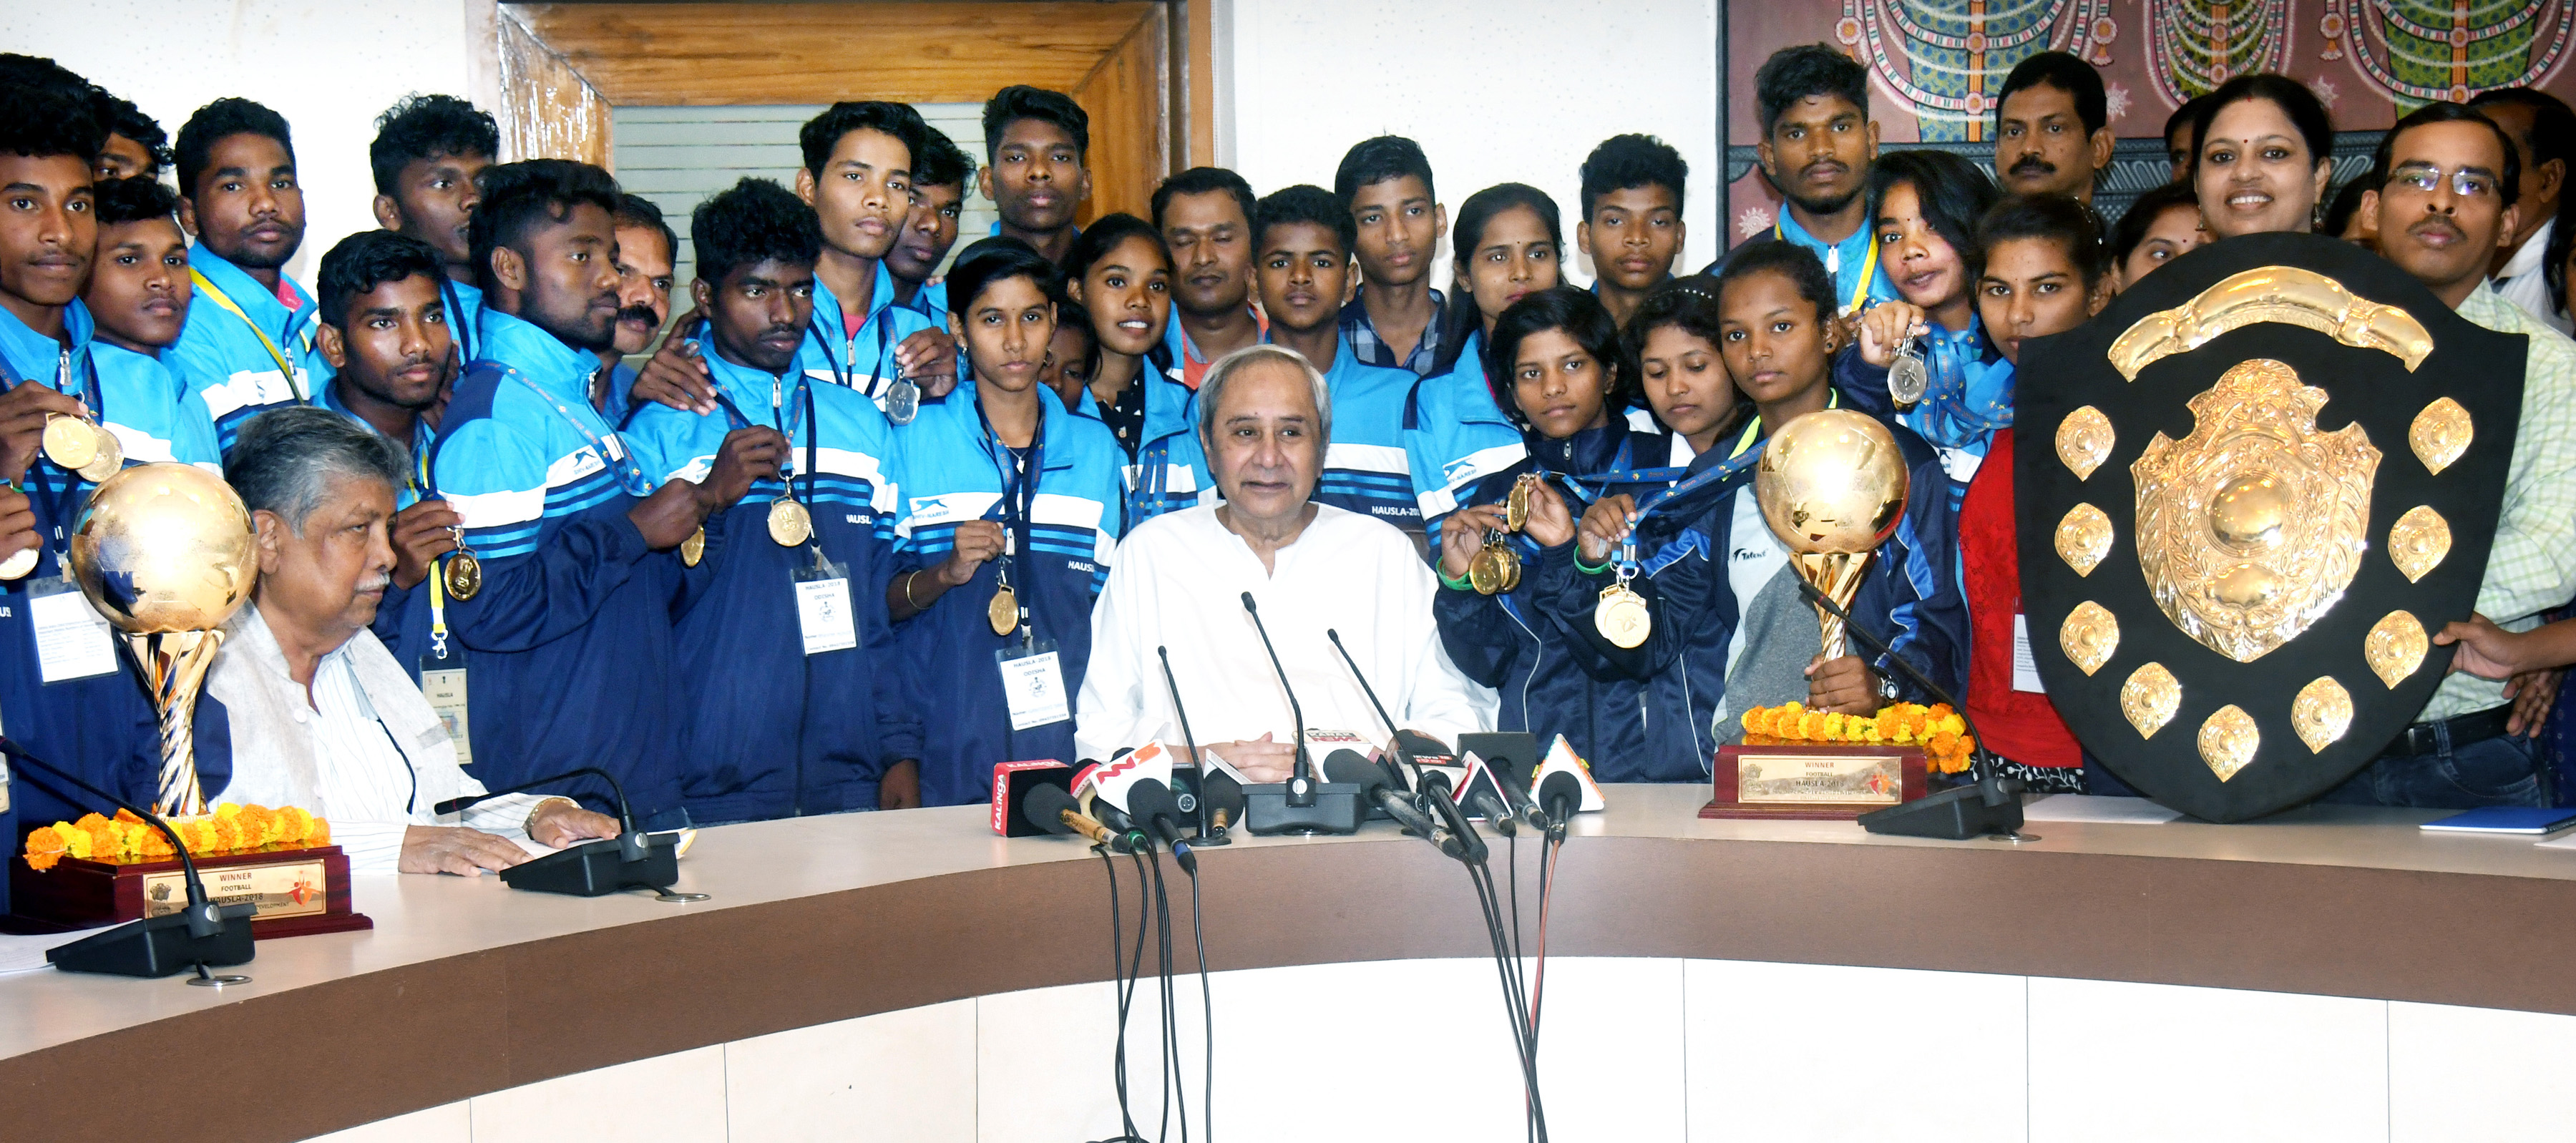 Odisha CM felicitate children for their performance in National level event 'Hausla-2018'